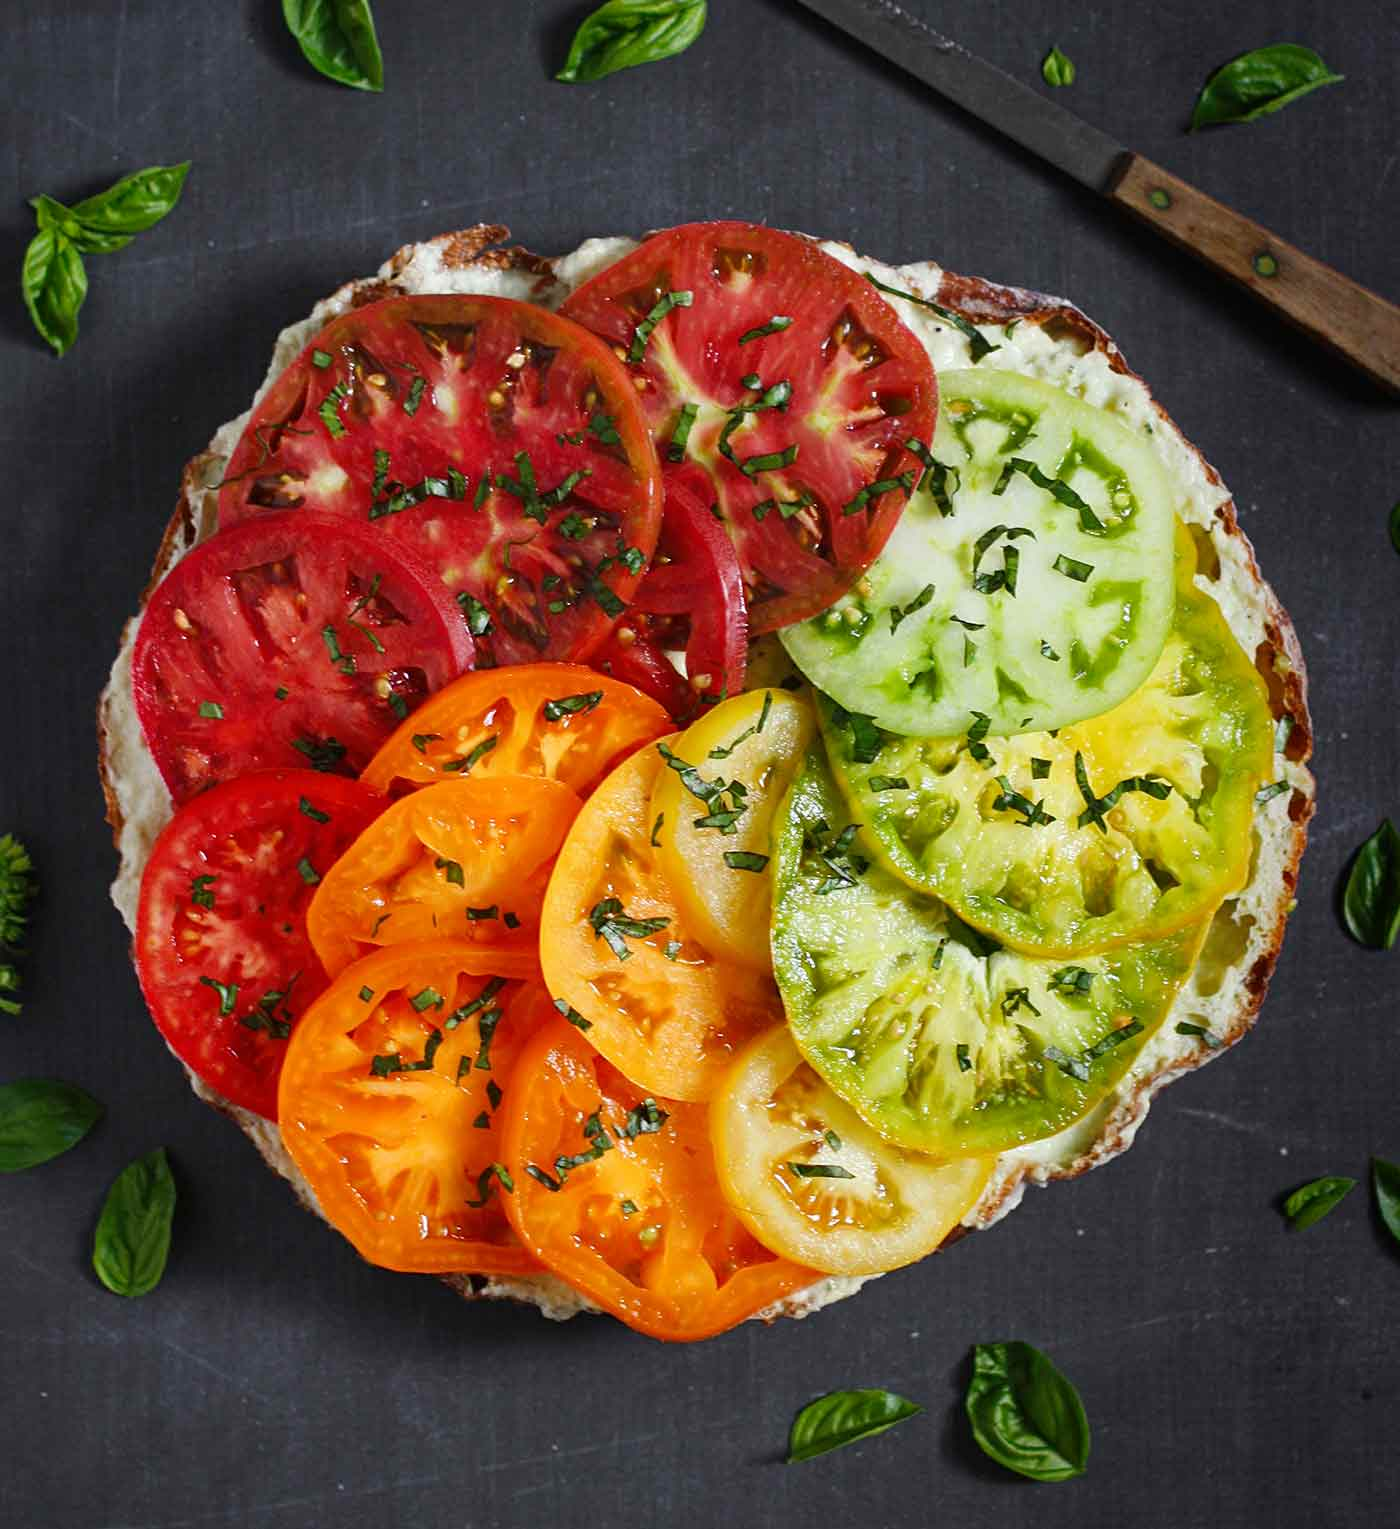 Open-faced heirloom tomato sandwich with rainbow tomatoes